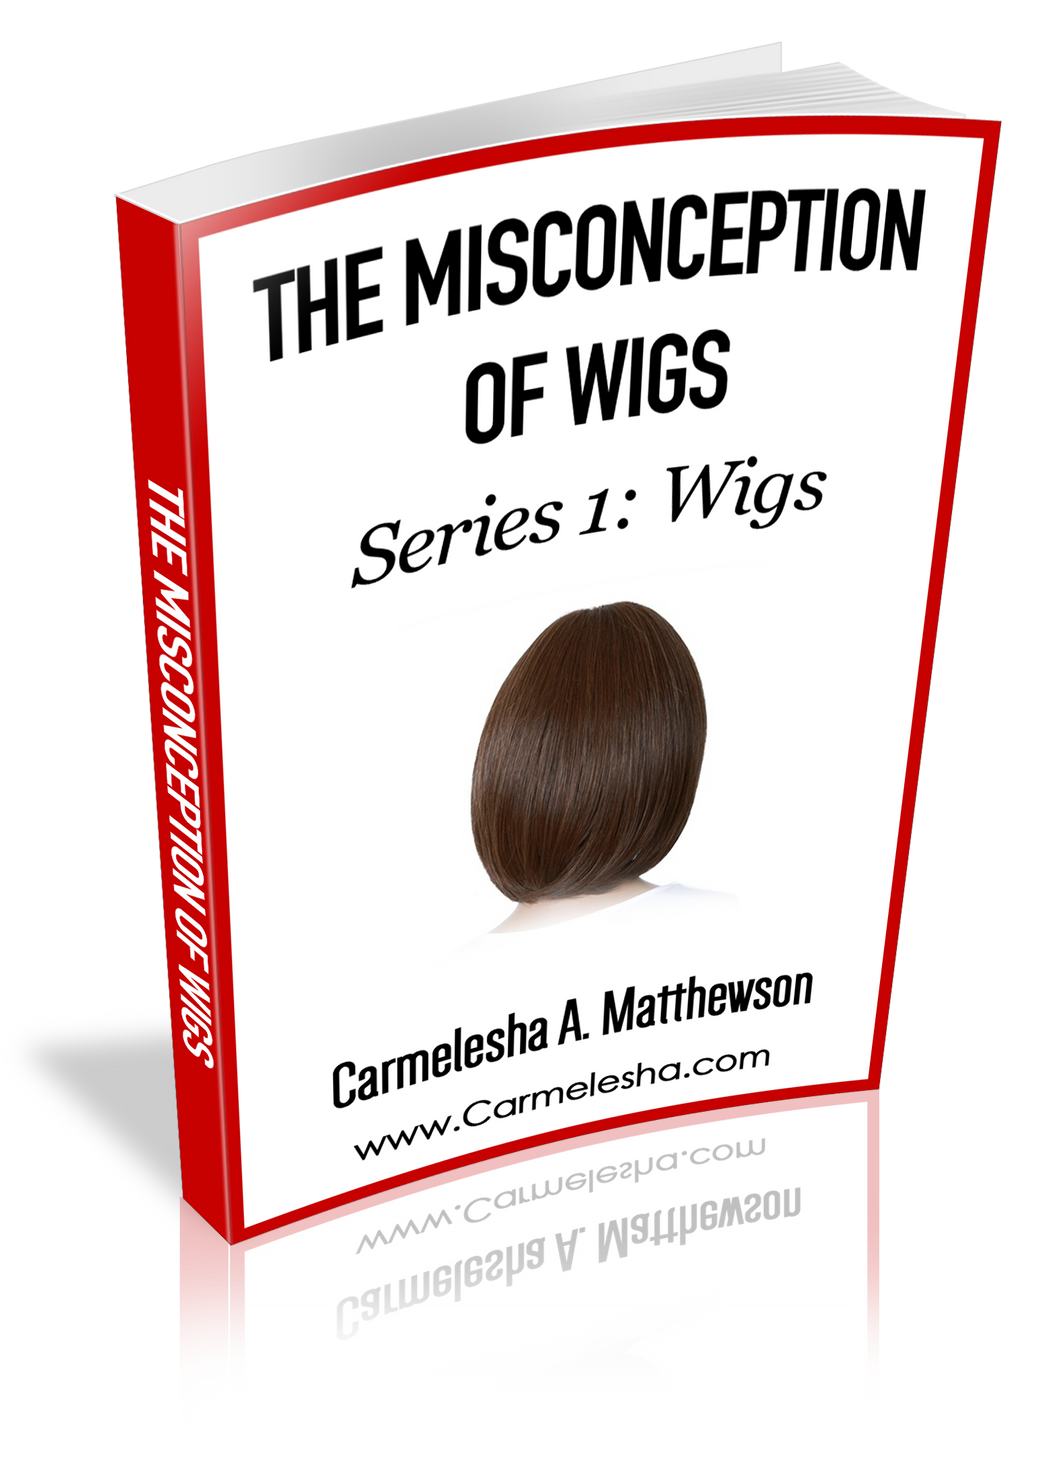 The Misconception Of Wigs Series 1